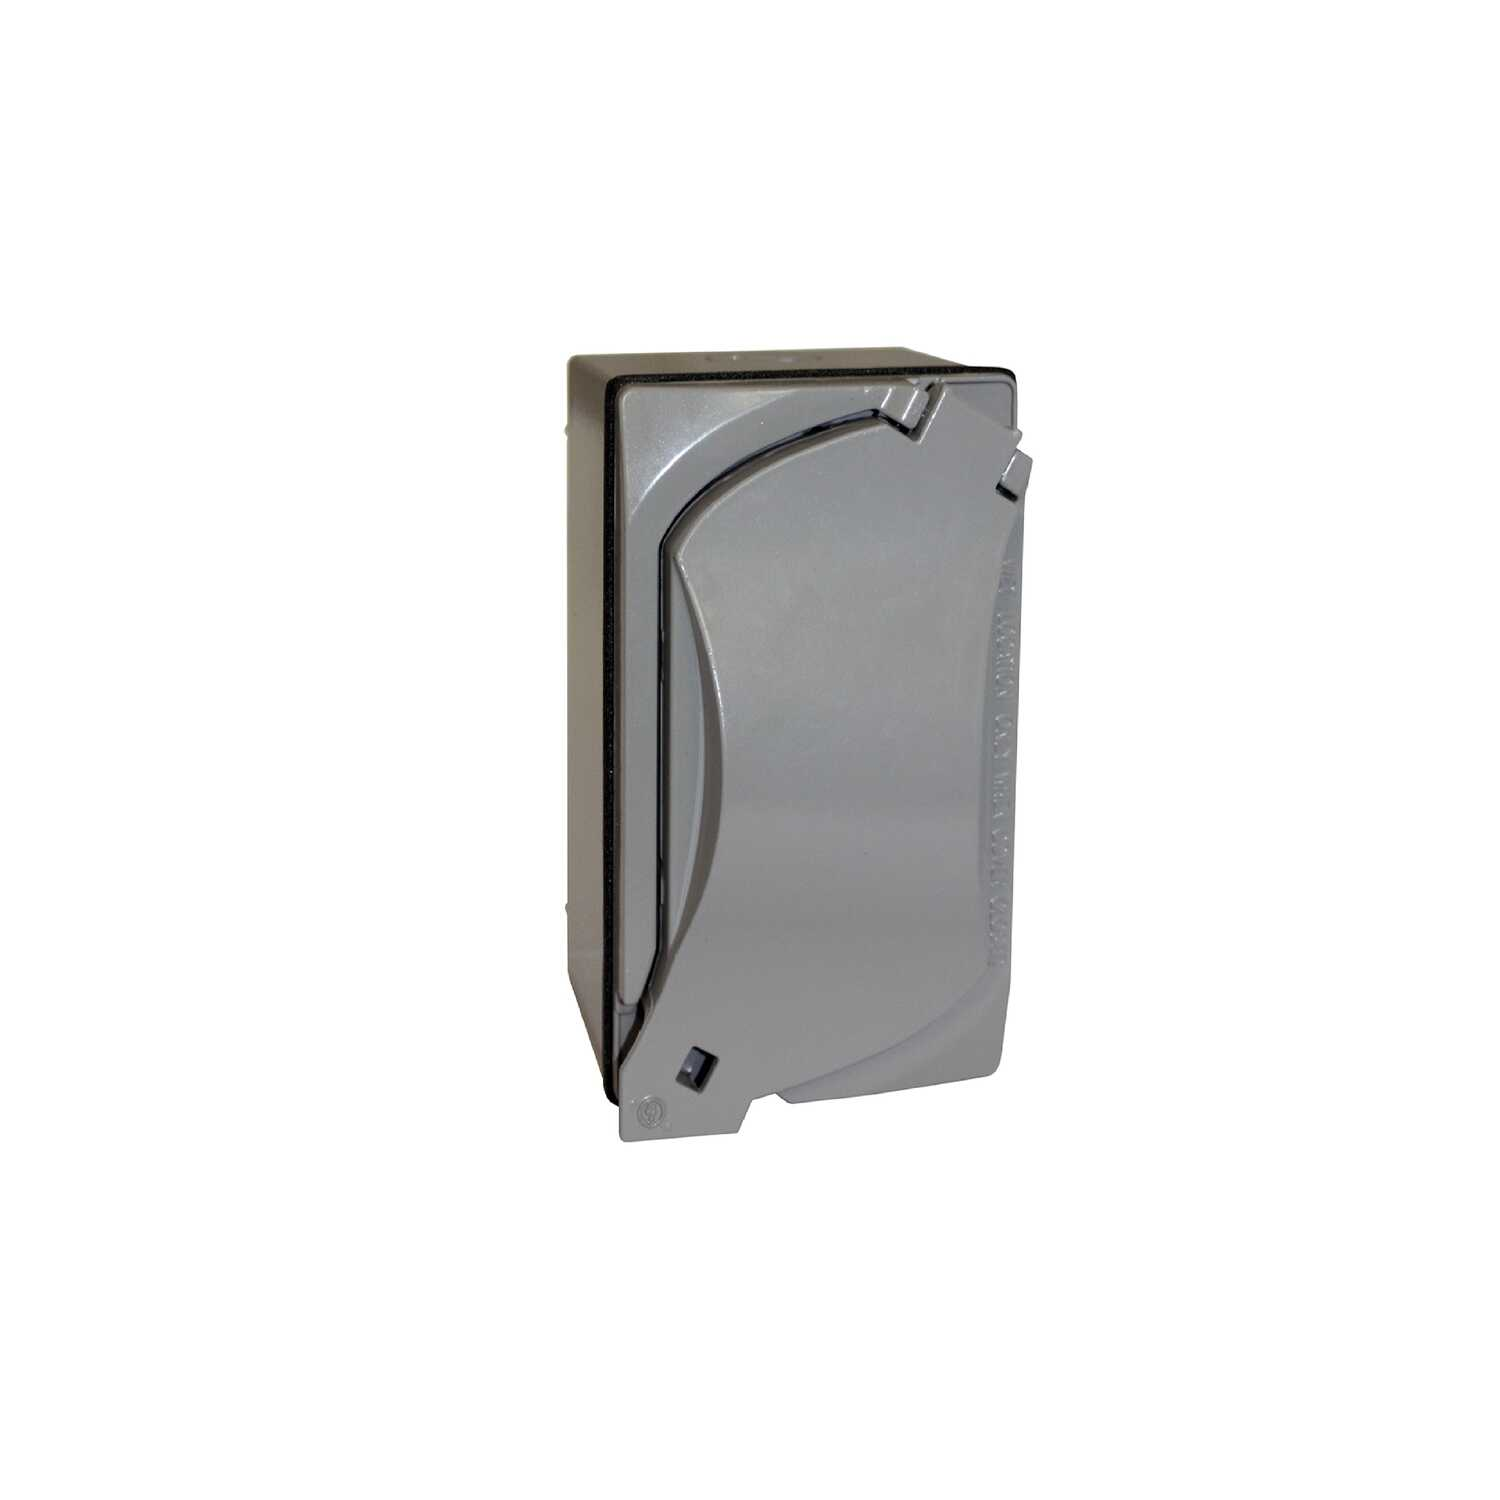 Sigma  2-13/16 in. GFCI Outlet Kit  Gray  Aluminum  Rectangle